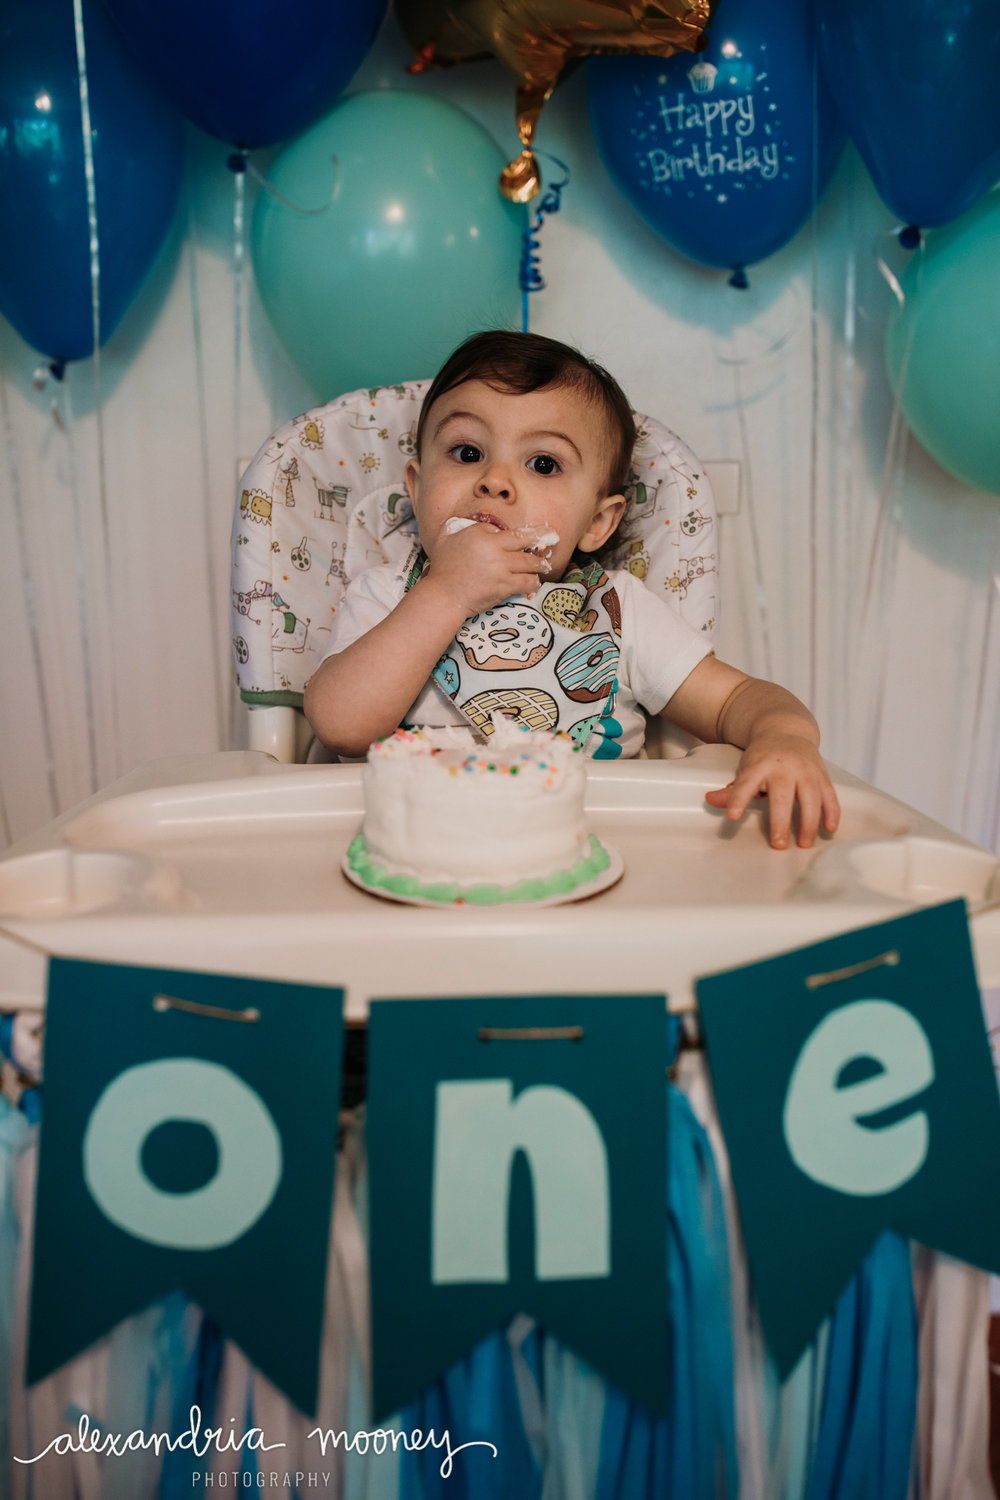 OliverFirstBirthday_Watermarked-19.jpg